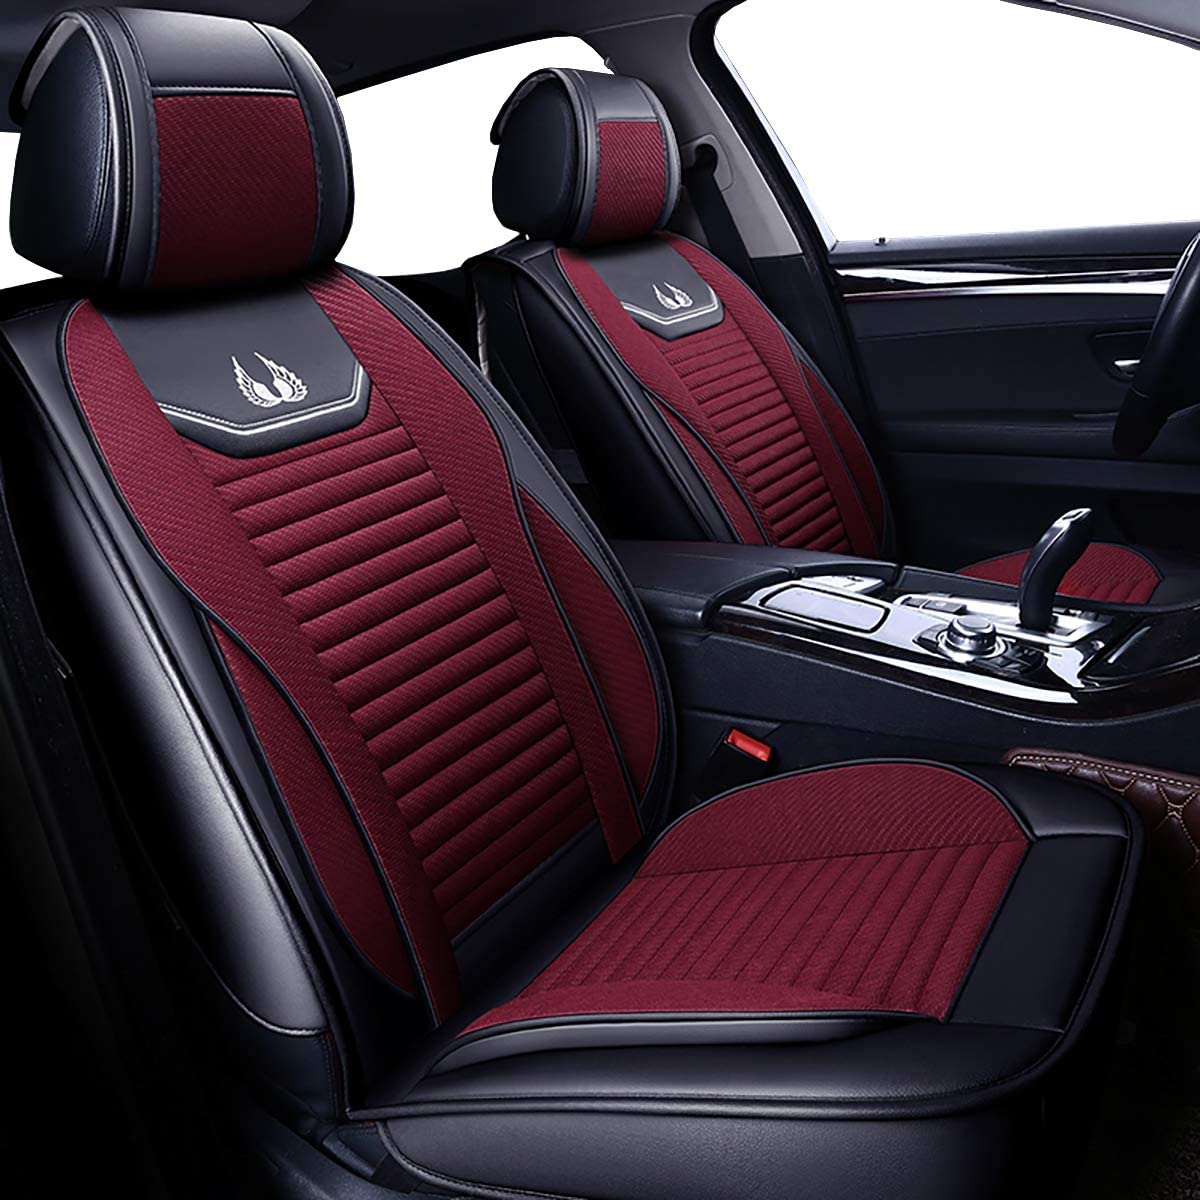 Faux Leatherette Automotive Vehicle Cushion Cover for Cars SUV Pick-up Truck Universal Fit Set Auto Interior Accessories 008 Front Pair, Burgundy OASIS AUTO Leather/&Fabric Car Seat Covers